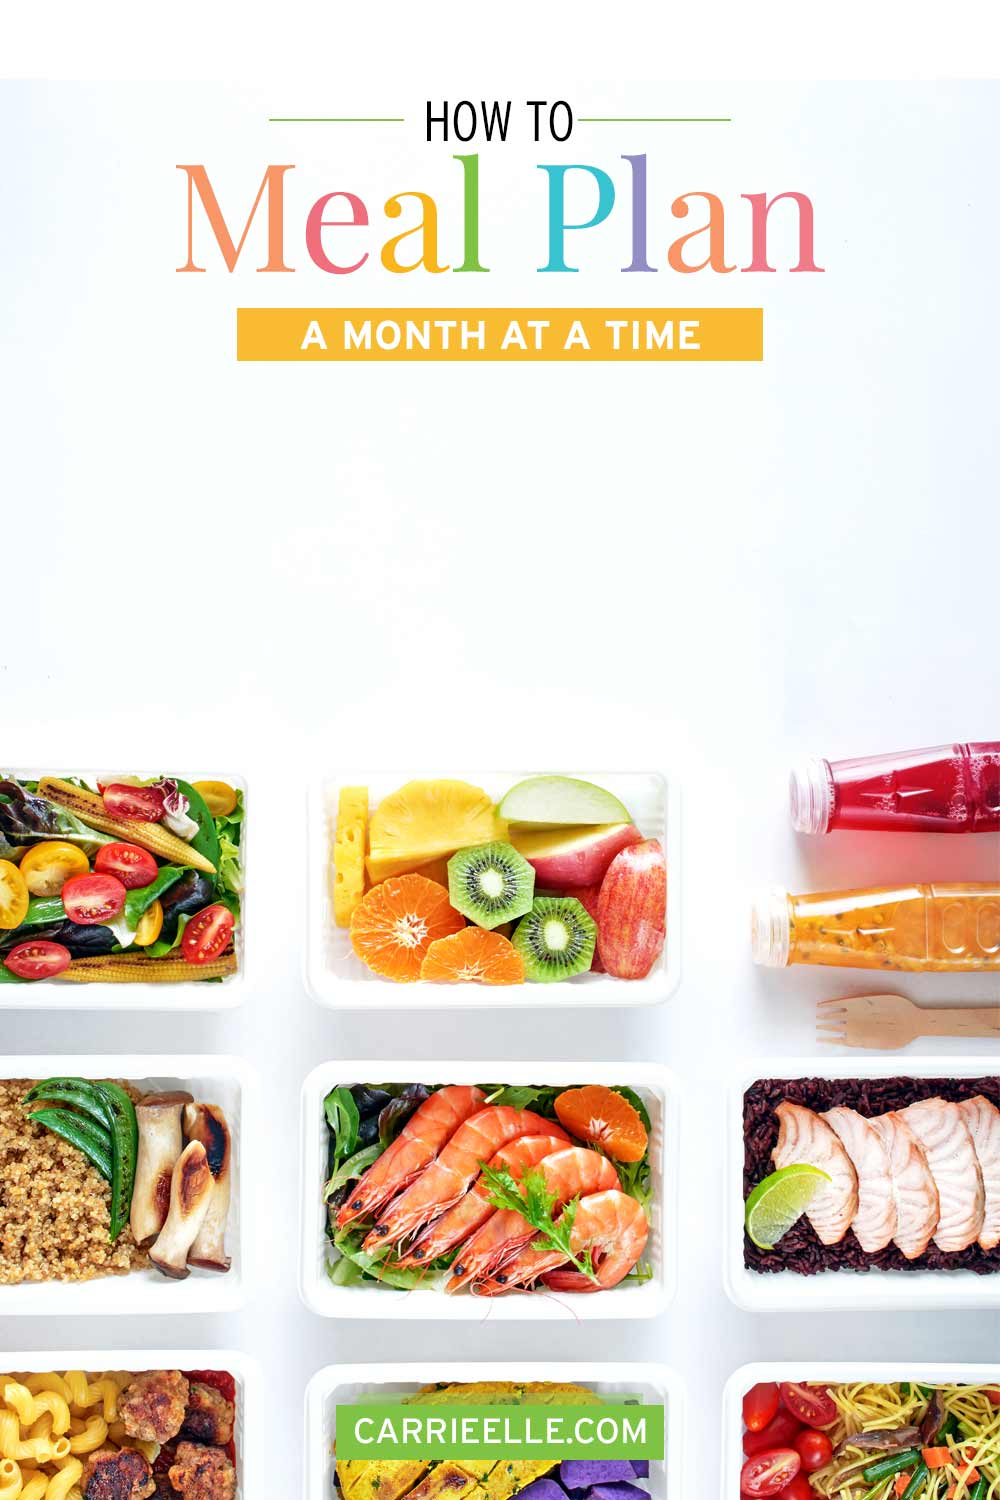 How to Meal Plan for a Month CarrieElle.com